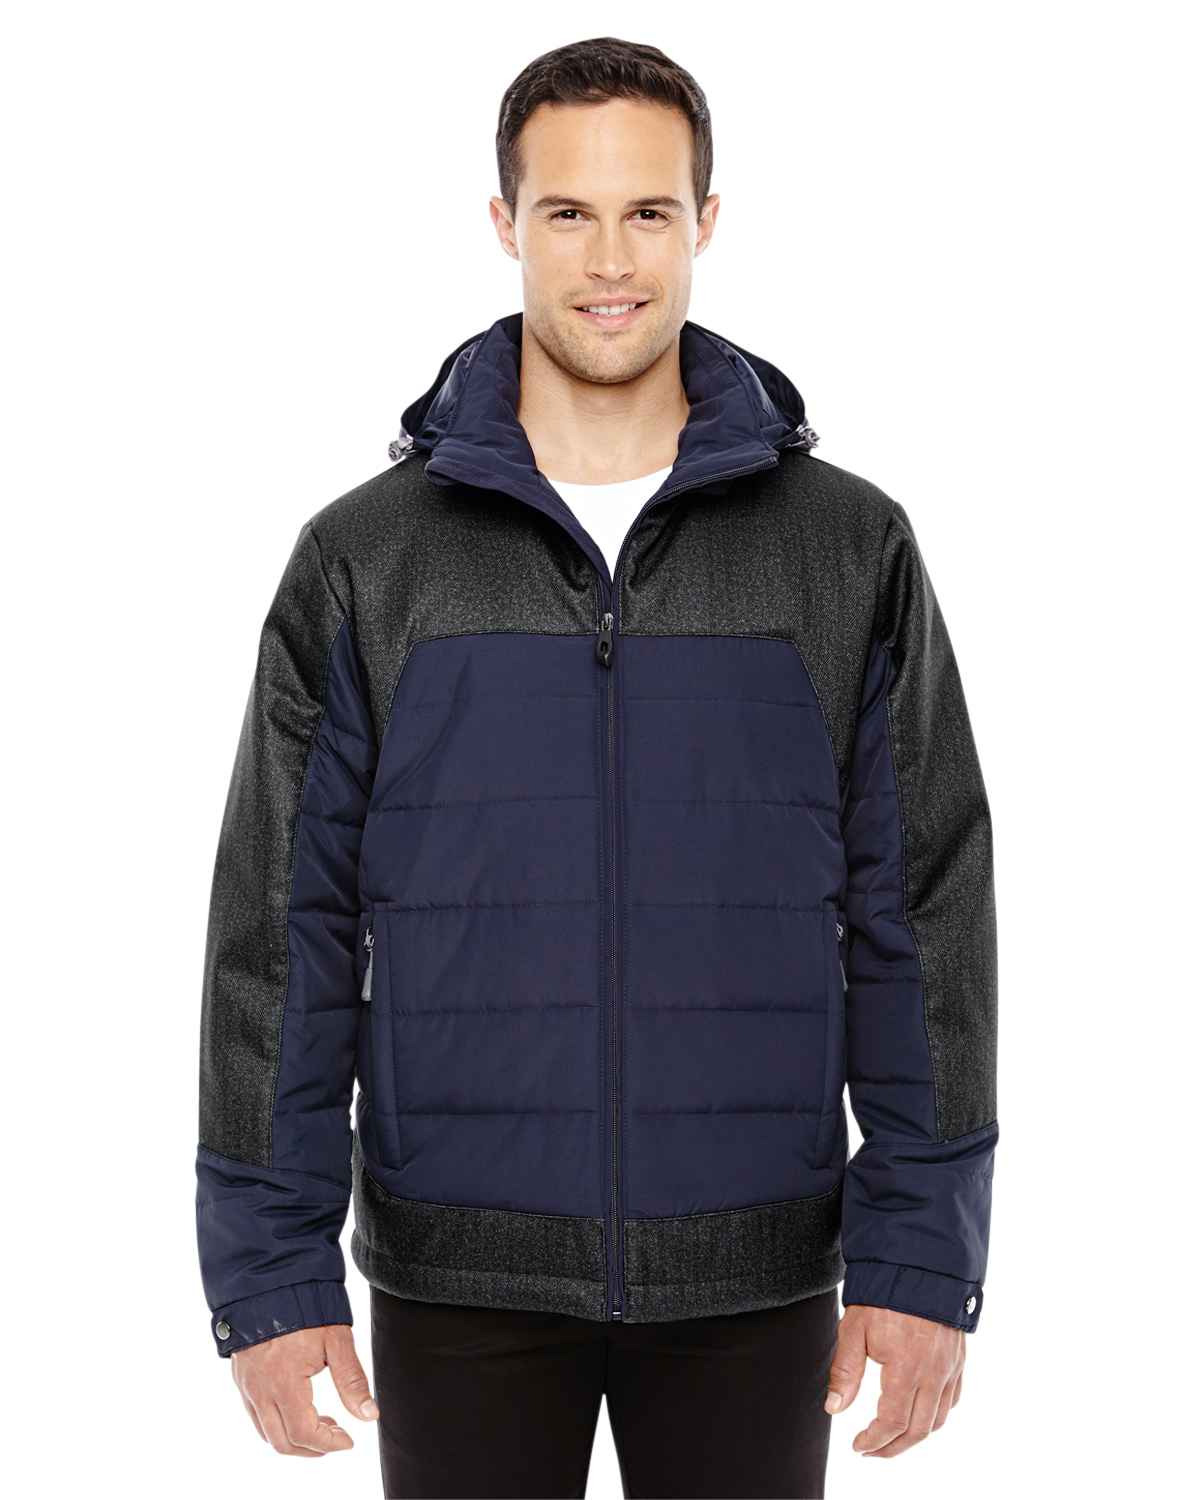 Ash City - North End 88232 - Men's Excursion Meridian Insulated Jacket with Melange Print